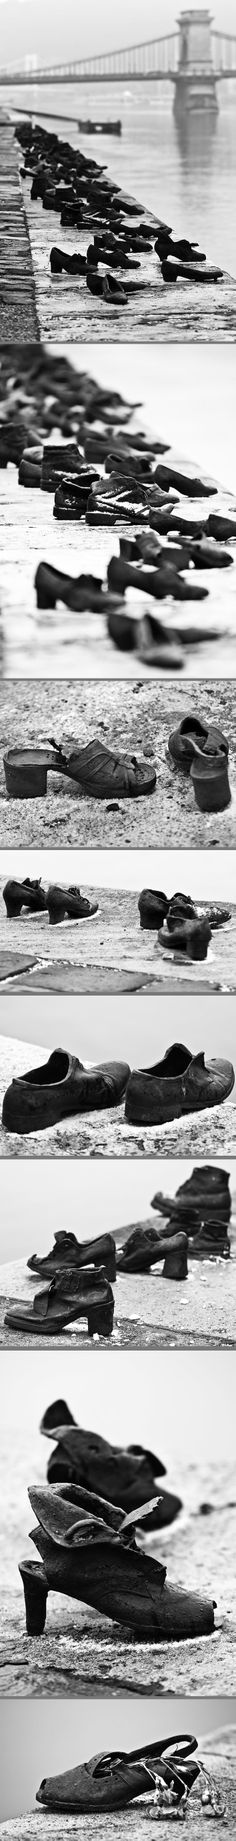 Gyula PAUER & Can Togay. Shoes on the Danube Promenade. A memorial created  on the bank of the Danube River in Budapest. 2005. It honors the Jews who were killed by fascist Arrow Cross militiamen in Budapest during WW II. They were ordered to take off their shoes, and were shot at the edge of the water.